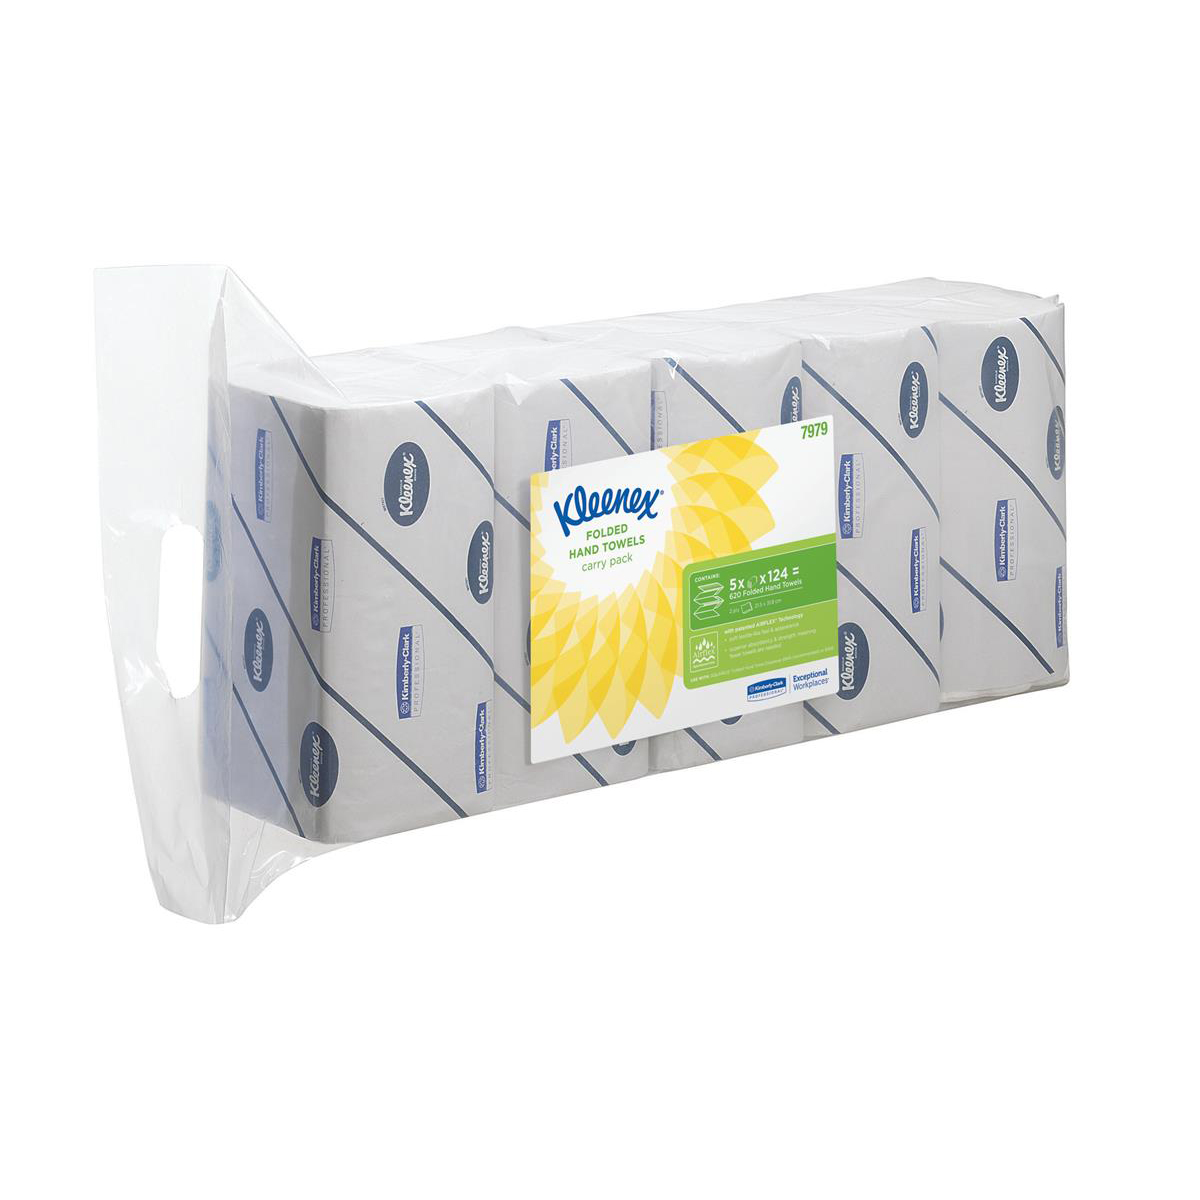 Hand towels Kleenex Ultra Hand Towels 2-ply 215x315mm 124 Towels per Sleeve White Ref 7979 [Pack 5]